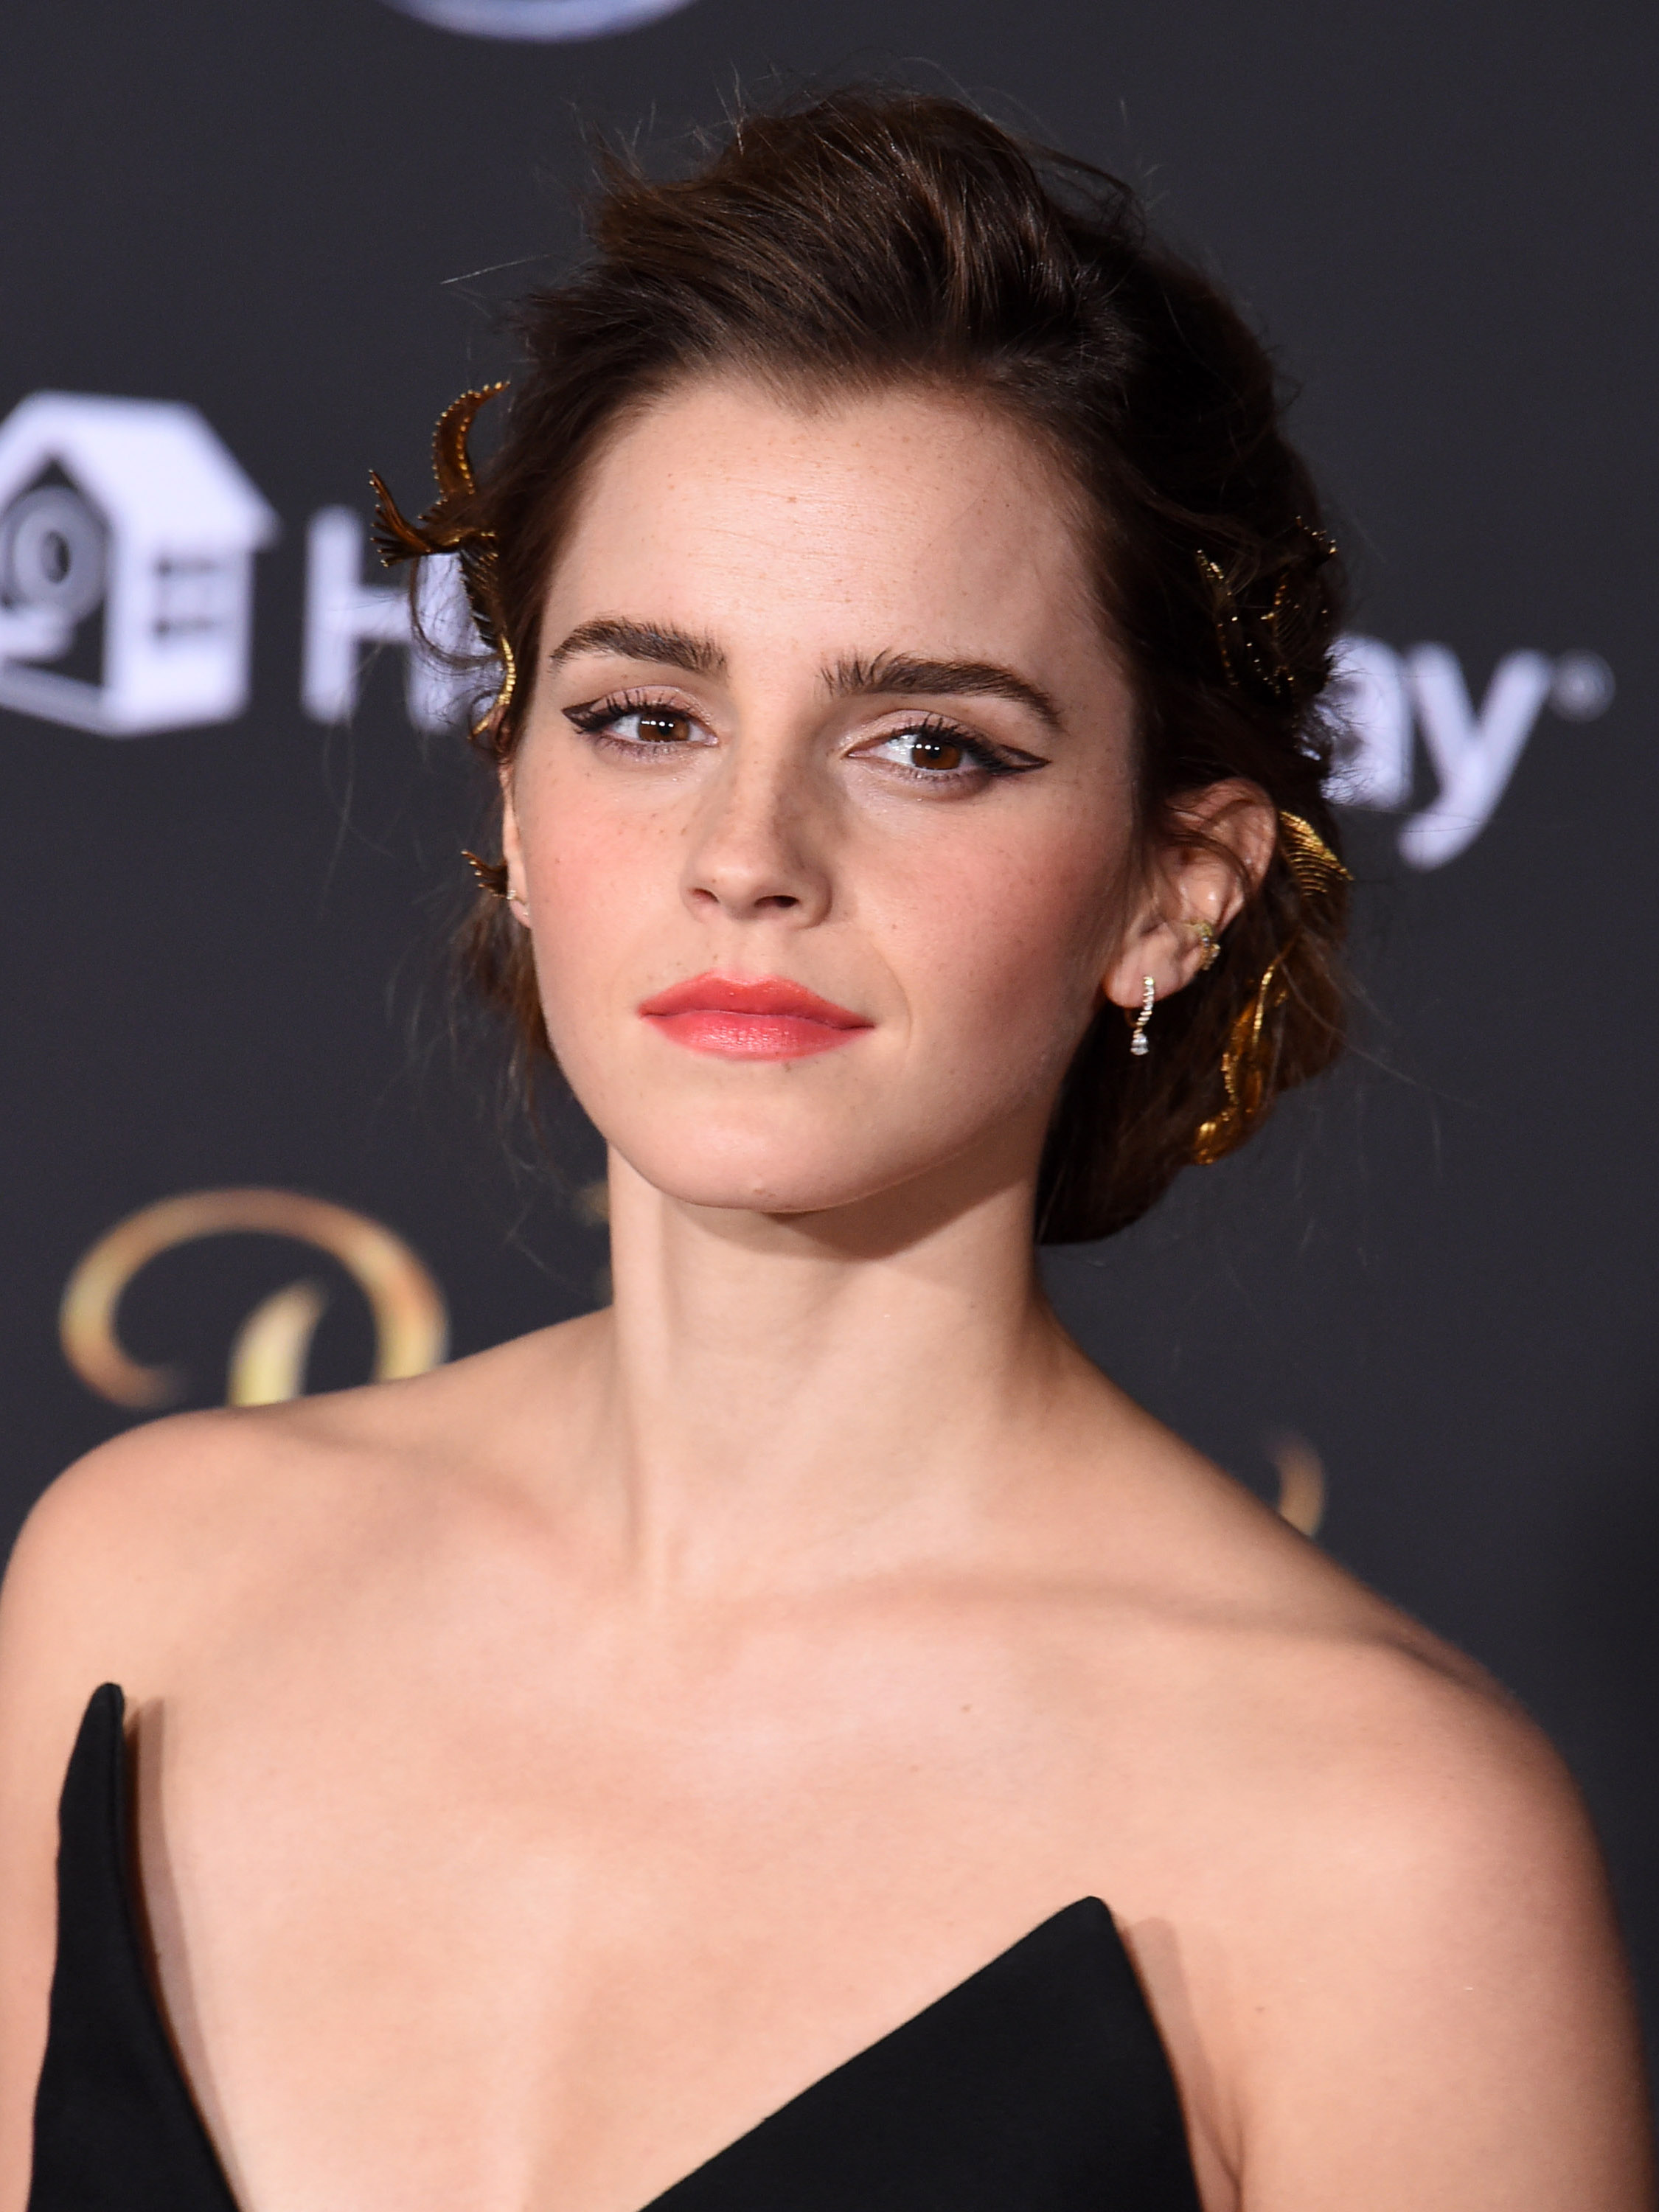 emma watson hits out at sexist comments about her 't*ts'